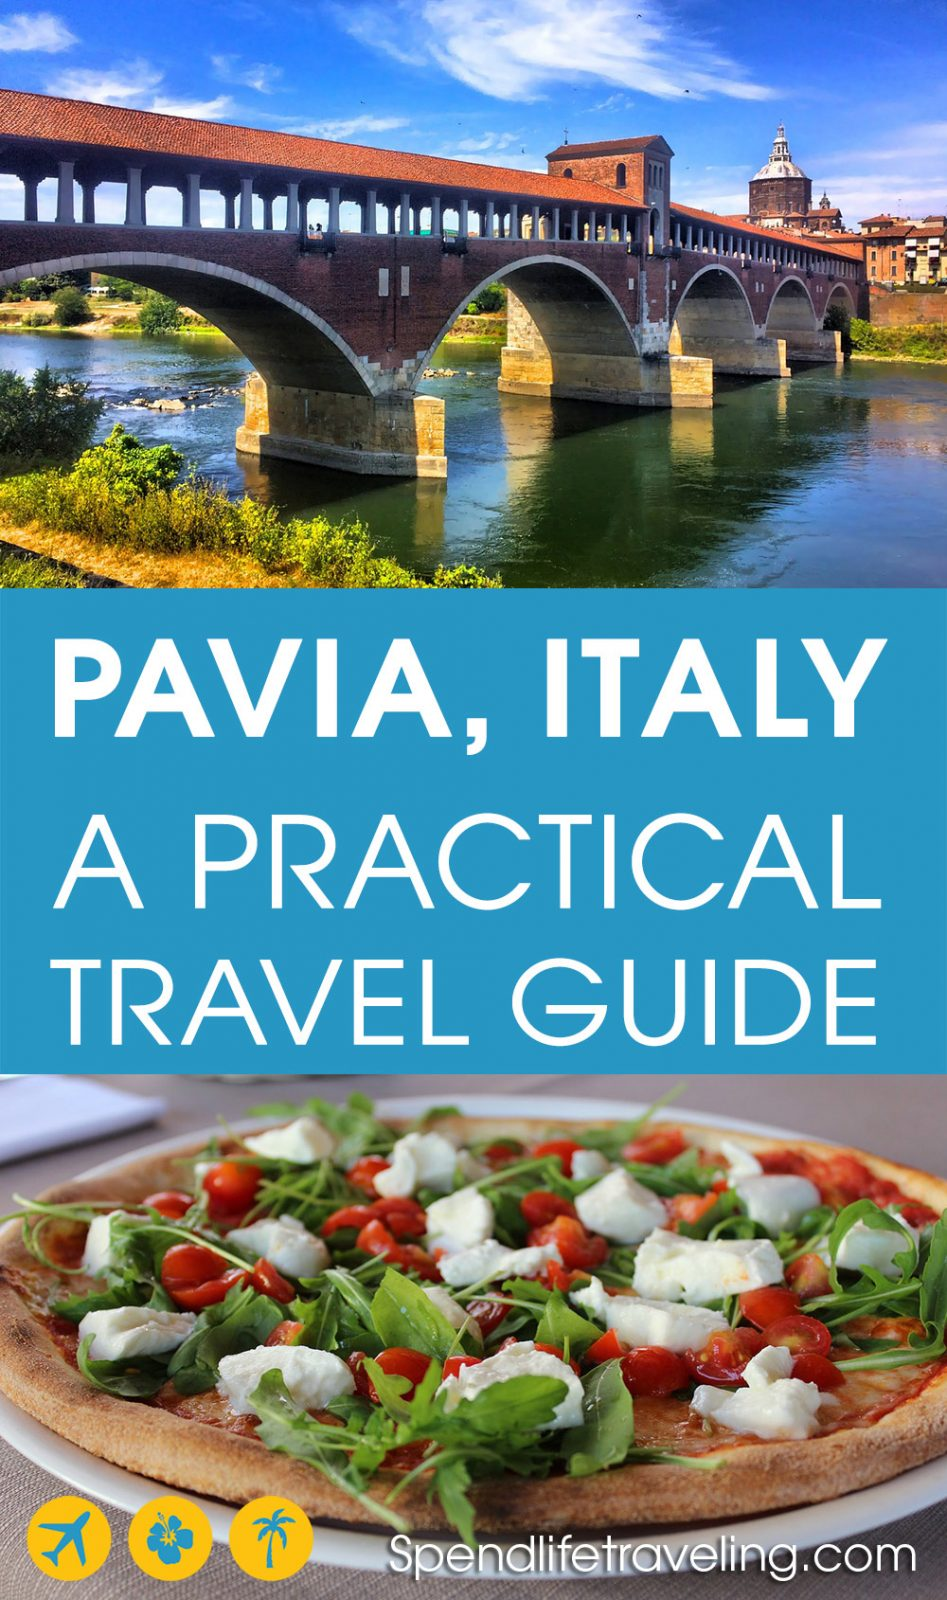 Insider's tips for what to do, where to stay & where to eat in #Pavia. Pavia is a lovely city worth visiting on your #Italy trip or as a day trip from #Milan. #traveltips #travelguide #travelItaly #visitItaly